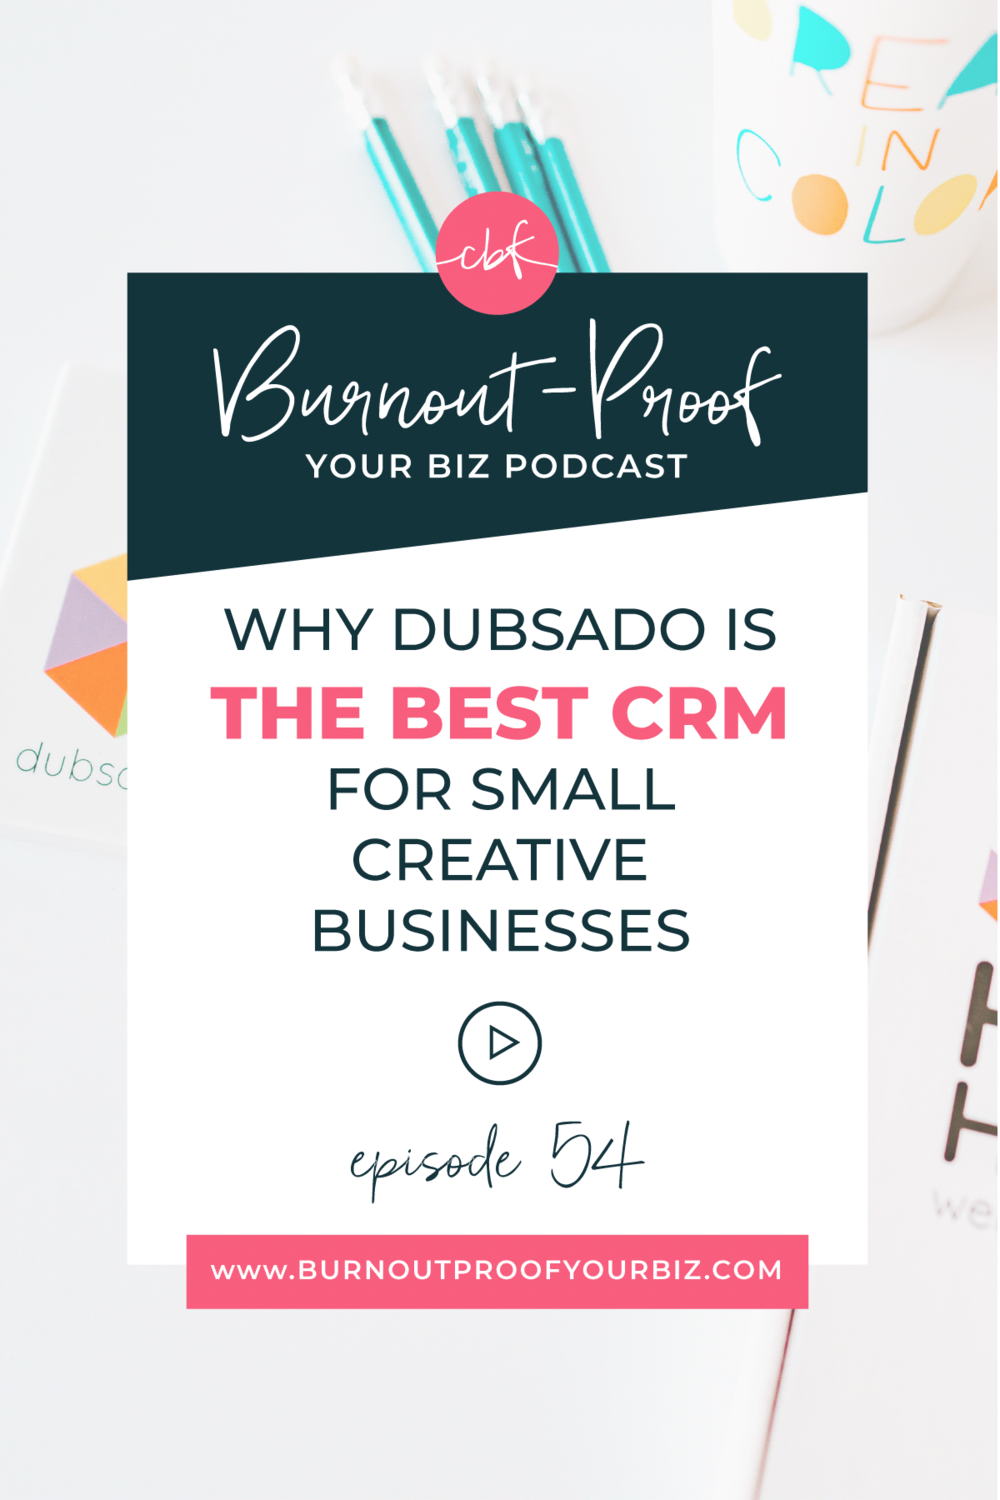 Why Dubsado is THE BEST CRM for small Creative Businesses on the Burnout-Proof Your Biz Podcast with Chelsea B Foster | Episode 054 - Dubsado's New Features: What to Know & How to Use Them In YOUR Biz | Learn how to run your biz and live your dream life on your own terms without the fear of burnout.  |||  Business Coach | Workflow & Productivity Specialist | Dubsado - a CRM for Creatives | Dubsado | Dubsado for Coaches | Dubsado for Photographers | Dubsado for Bloggers | Dubsado for Network Marketers | Dubsado for Graphic Designers | Dubsado New Features | Overwhelmed | Stressed-out | Journaling Activity | Creative Entrepreneur | Creative Influencer | Productivity | Dream life | Freedom Lifestyle | Having a business that supports your dream life | Client onboarding | Leads tracking |